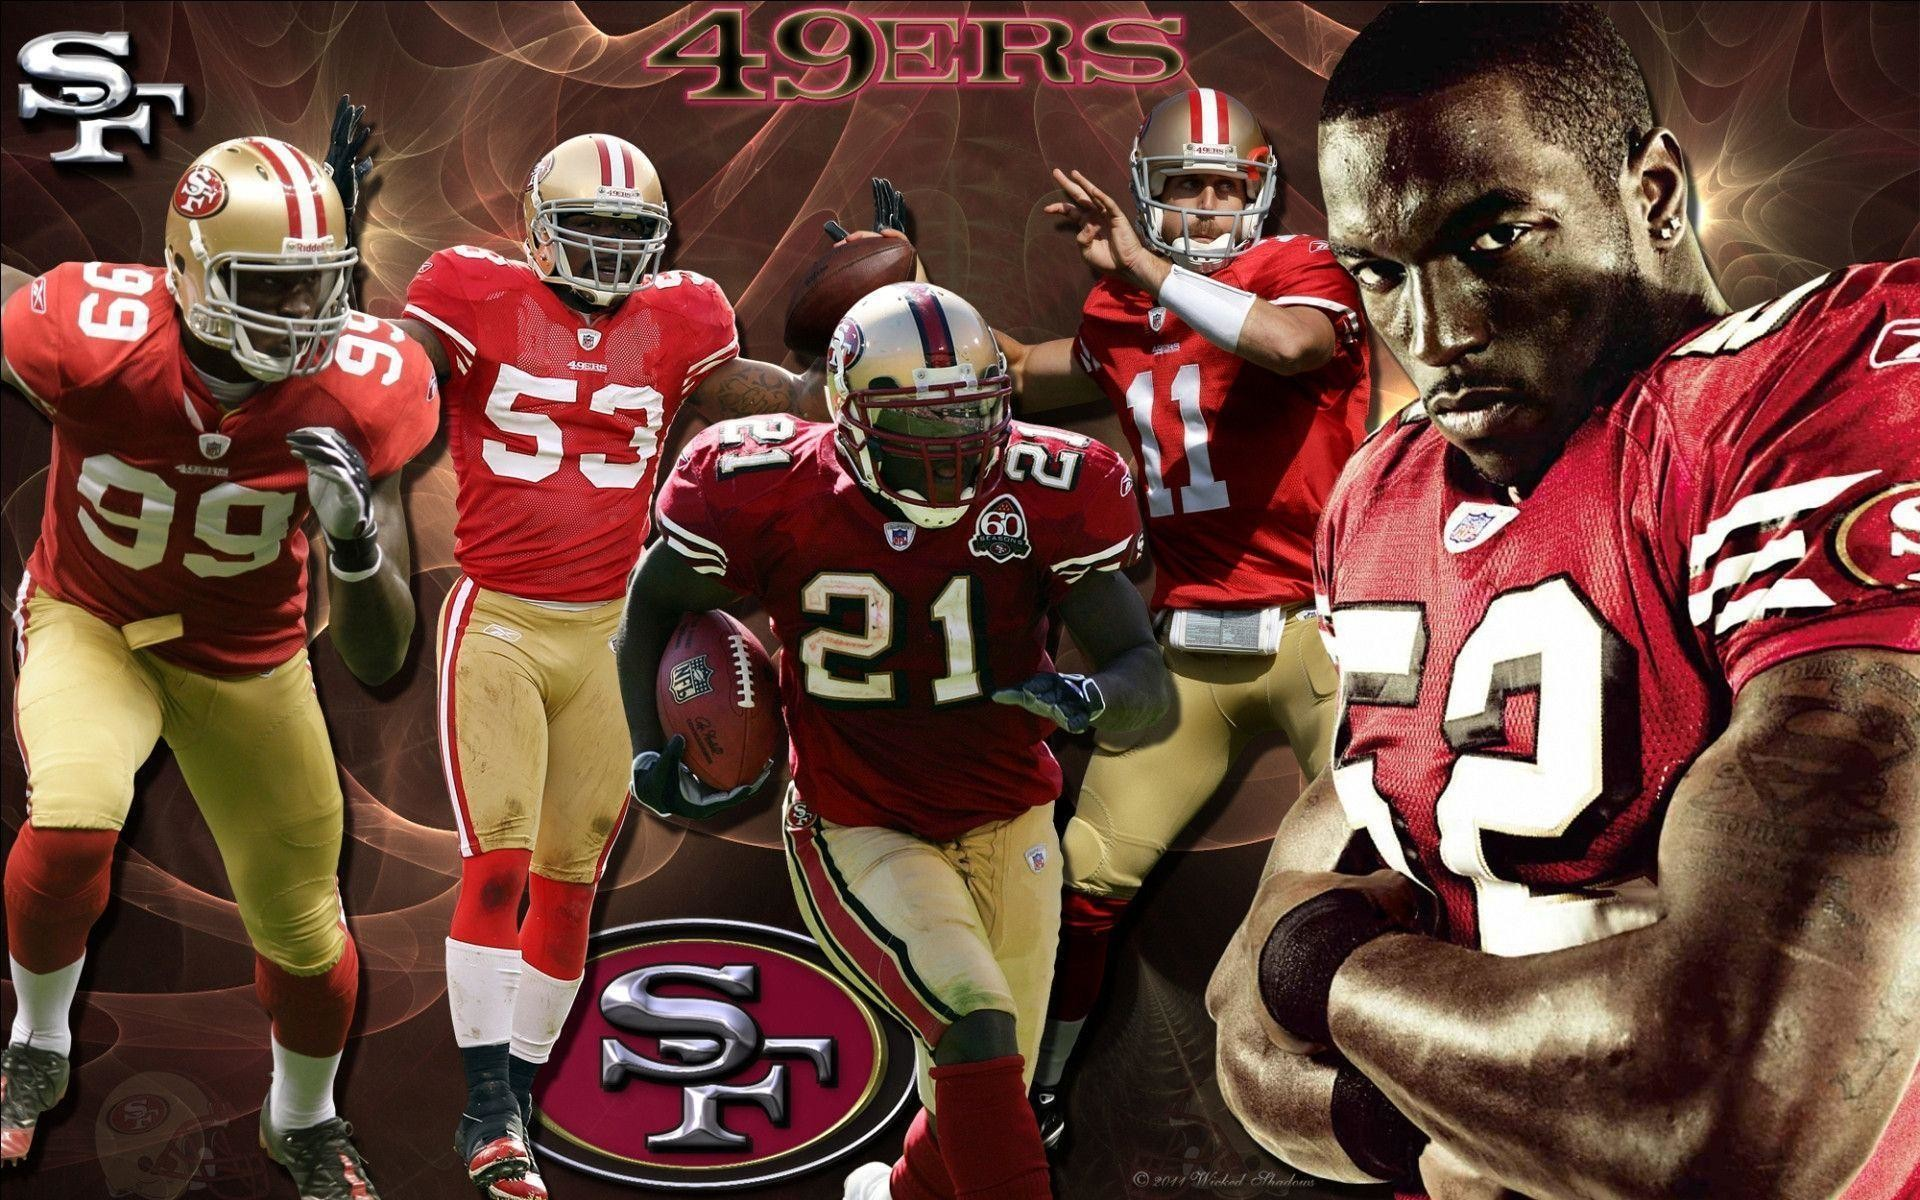 49ers wallpaper wednesday 67 images 1920x1200 49ers wallpapers wednesday wallpaper cave voltagebd Image collections